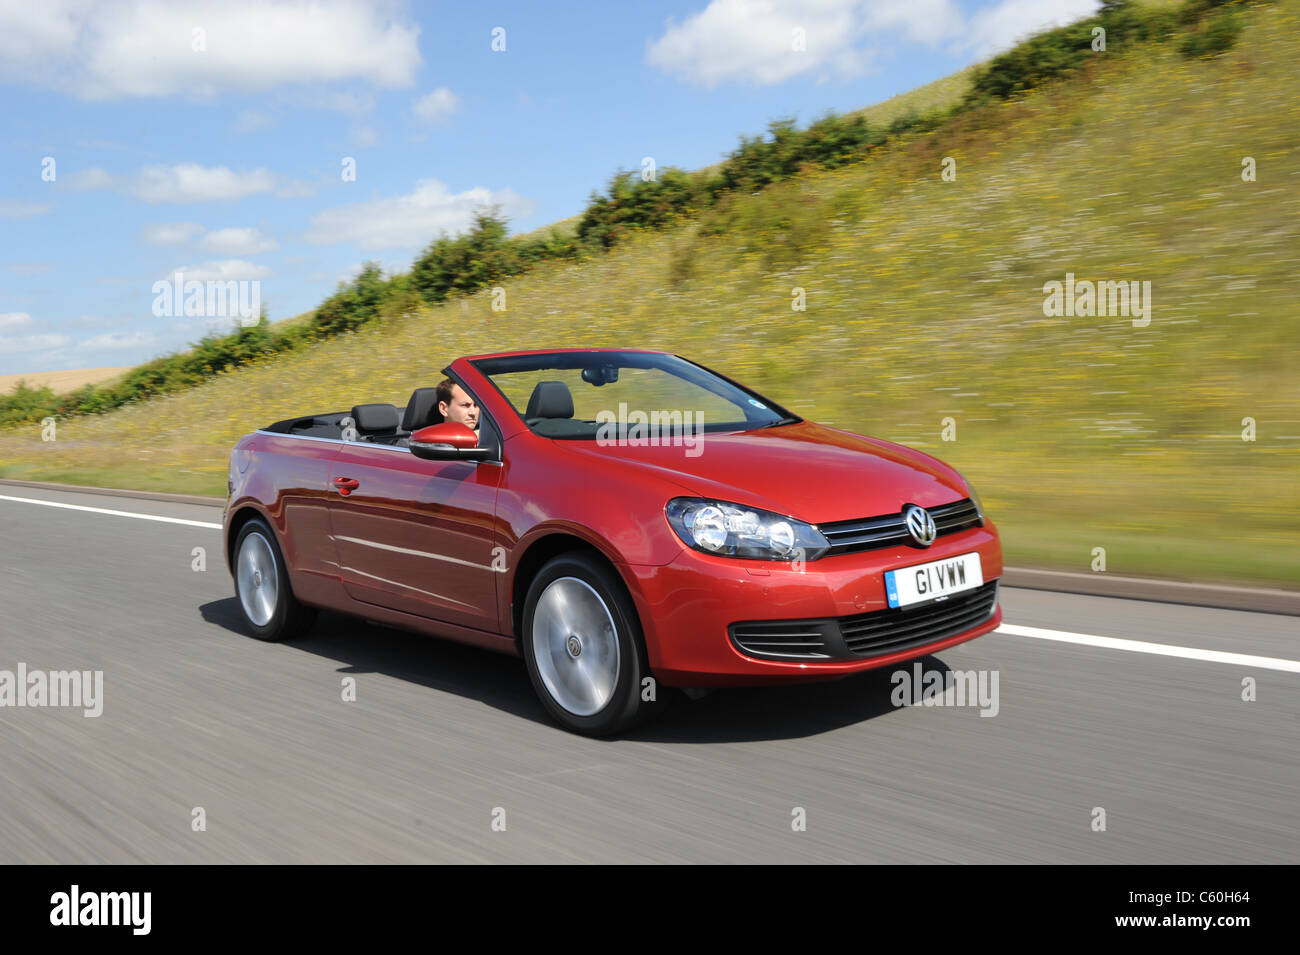 the new 2011 Volkswagen Golf Cabriolet TDI bluemotion - Stock Image